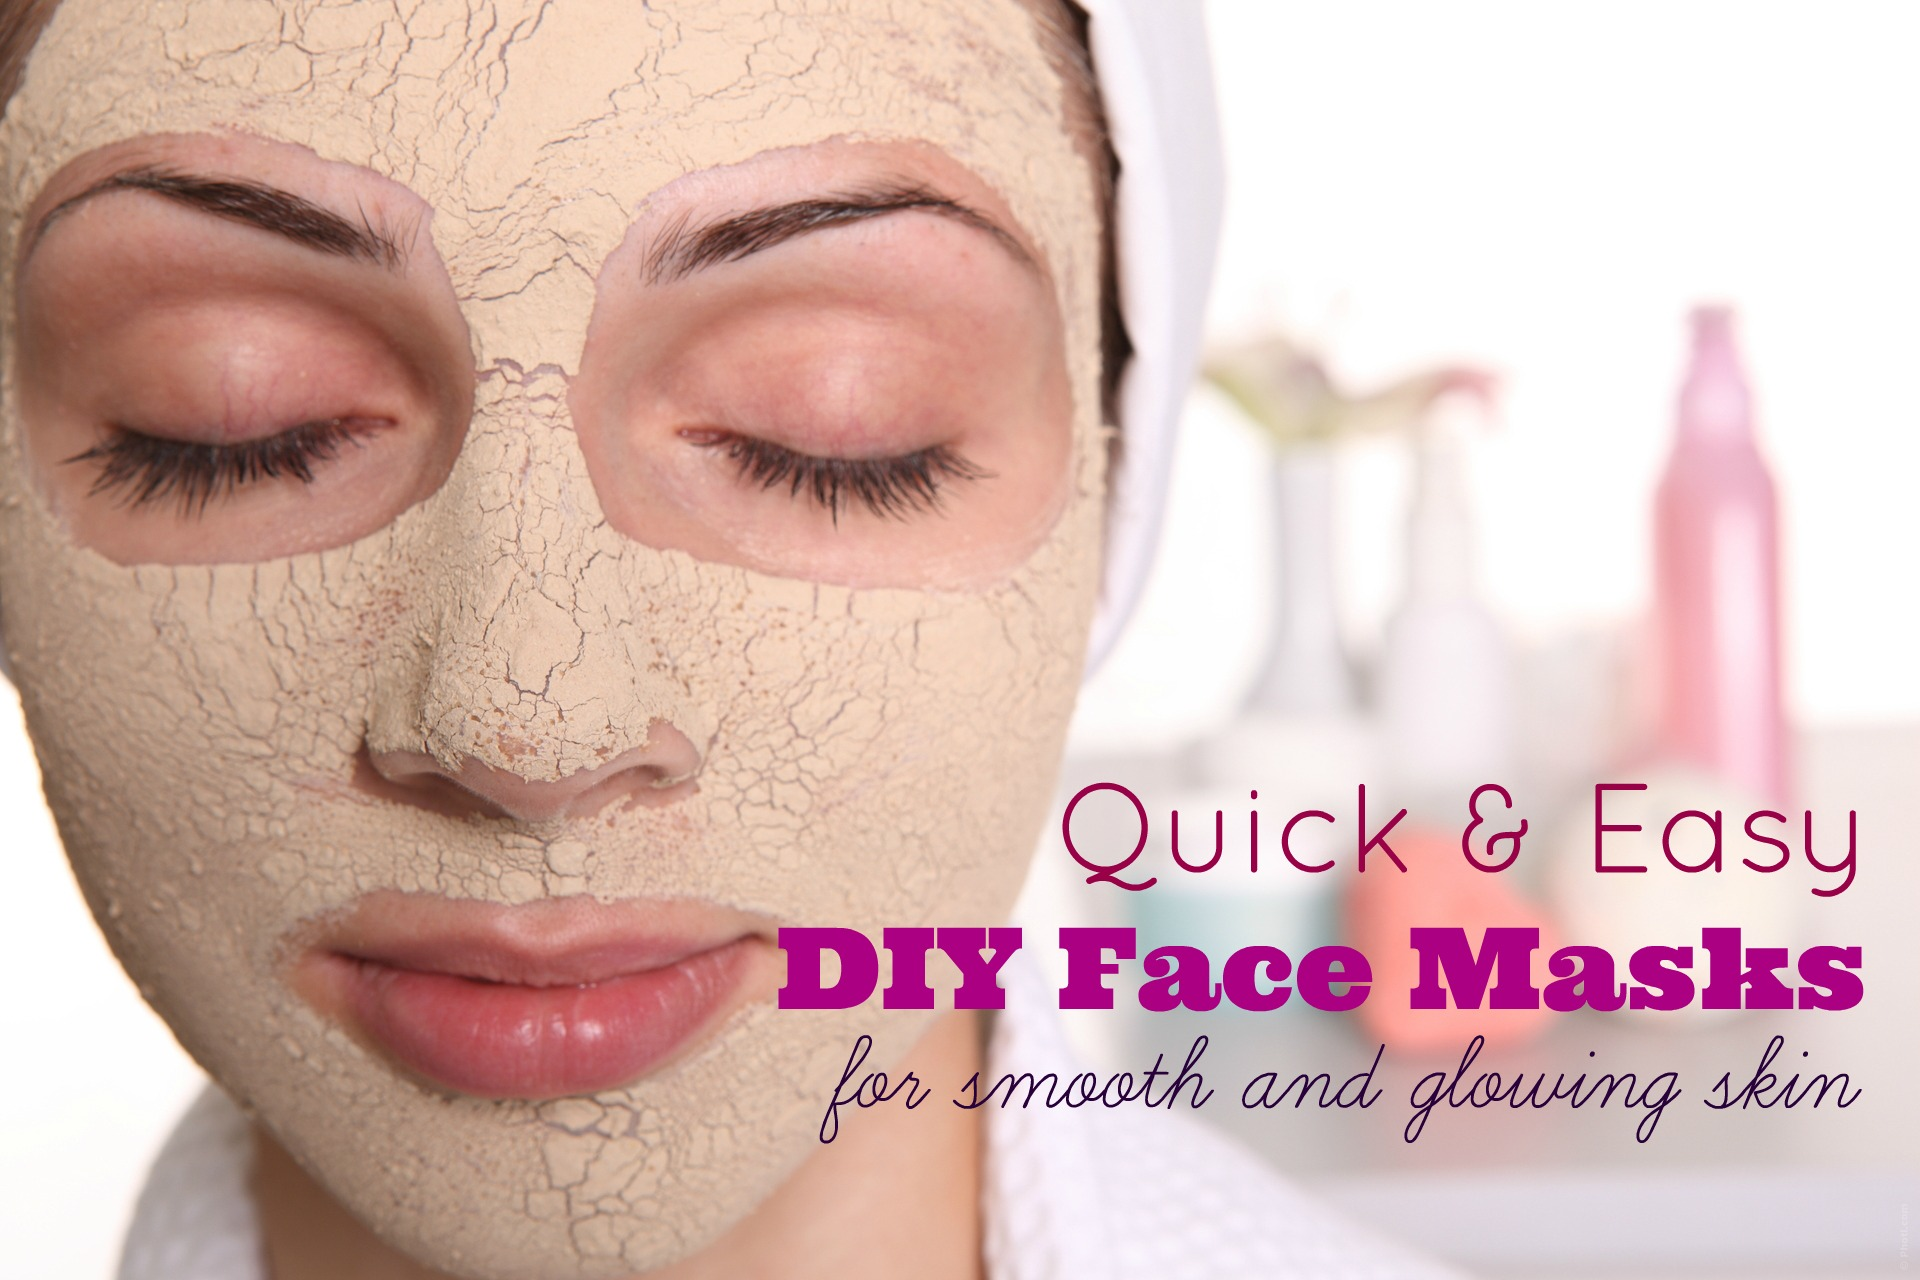 Quick and easy DIY smoothing face masks!